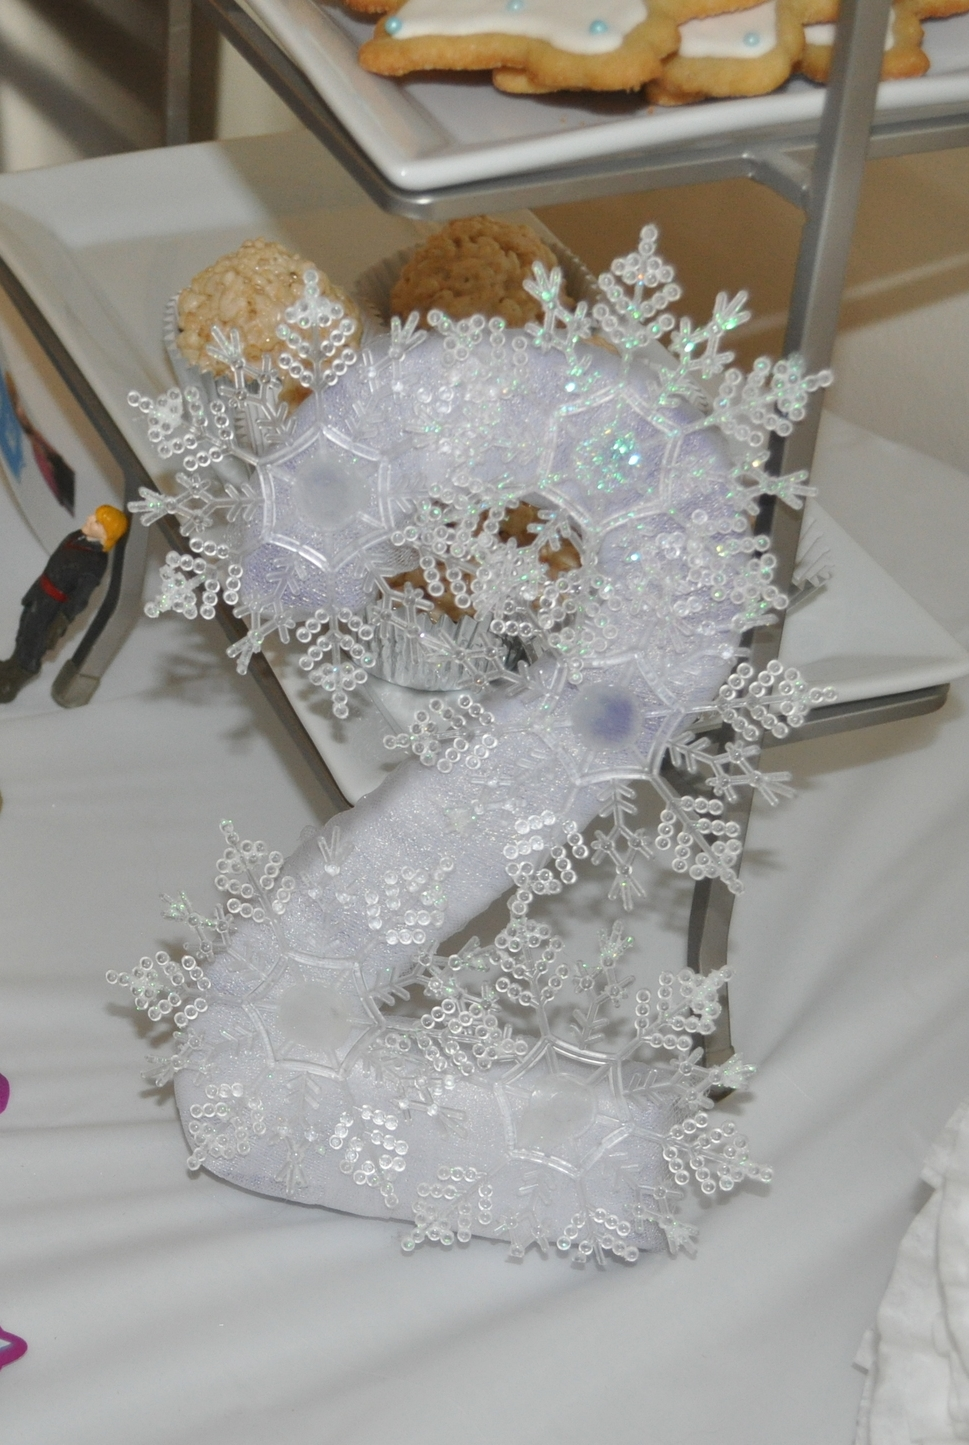 A 2 wrapped in tulle with snowflakes for M